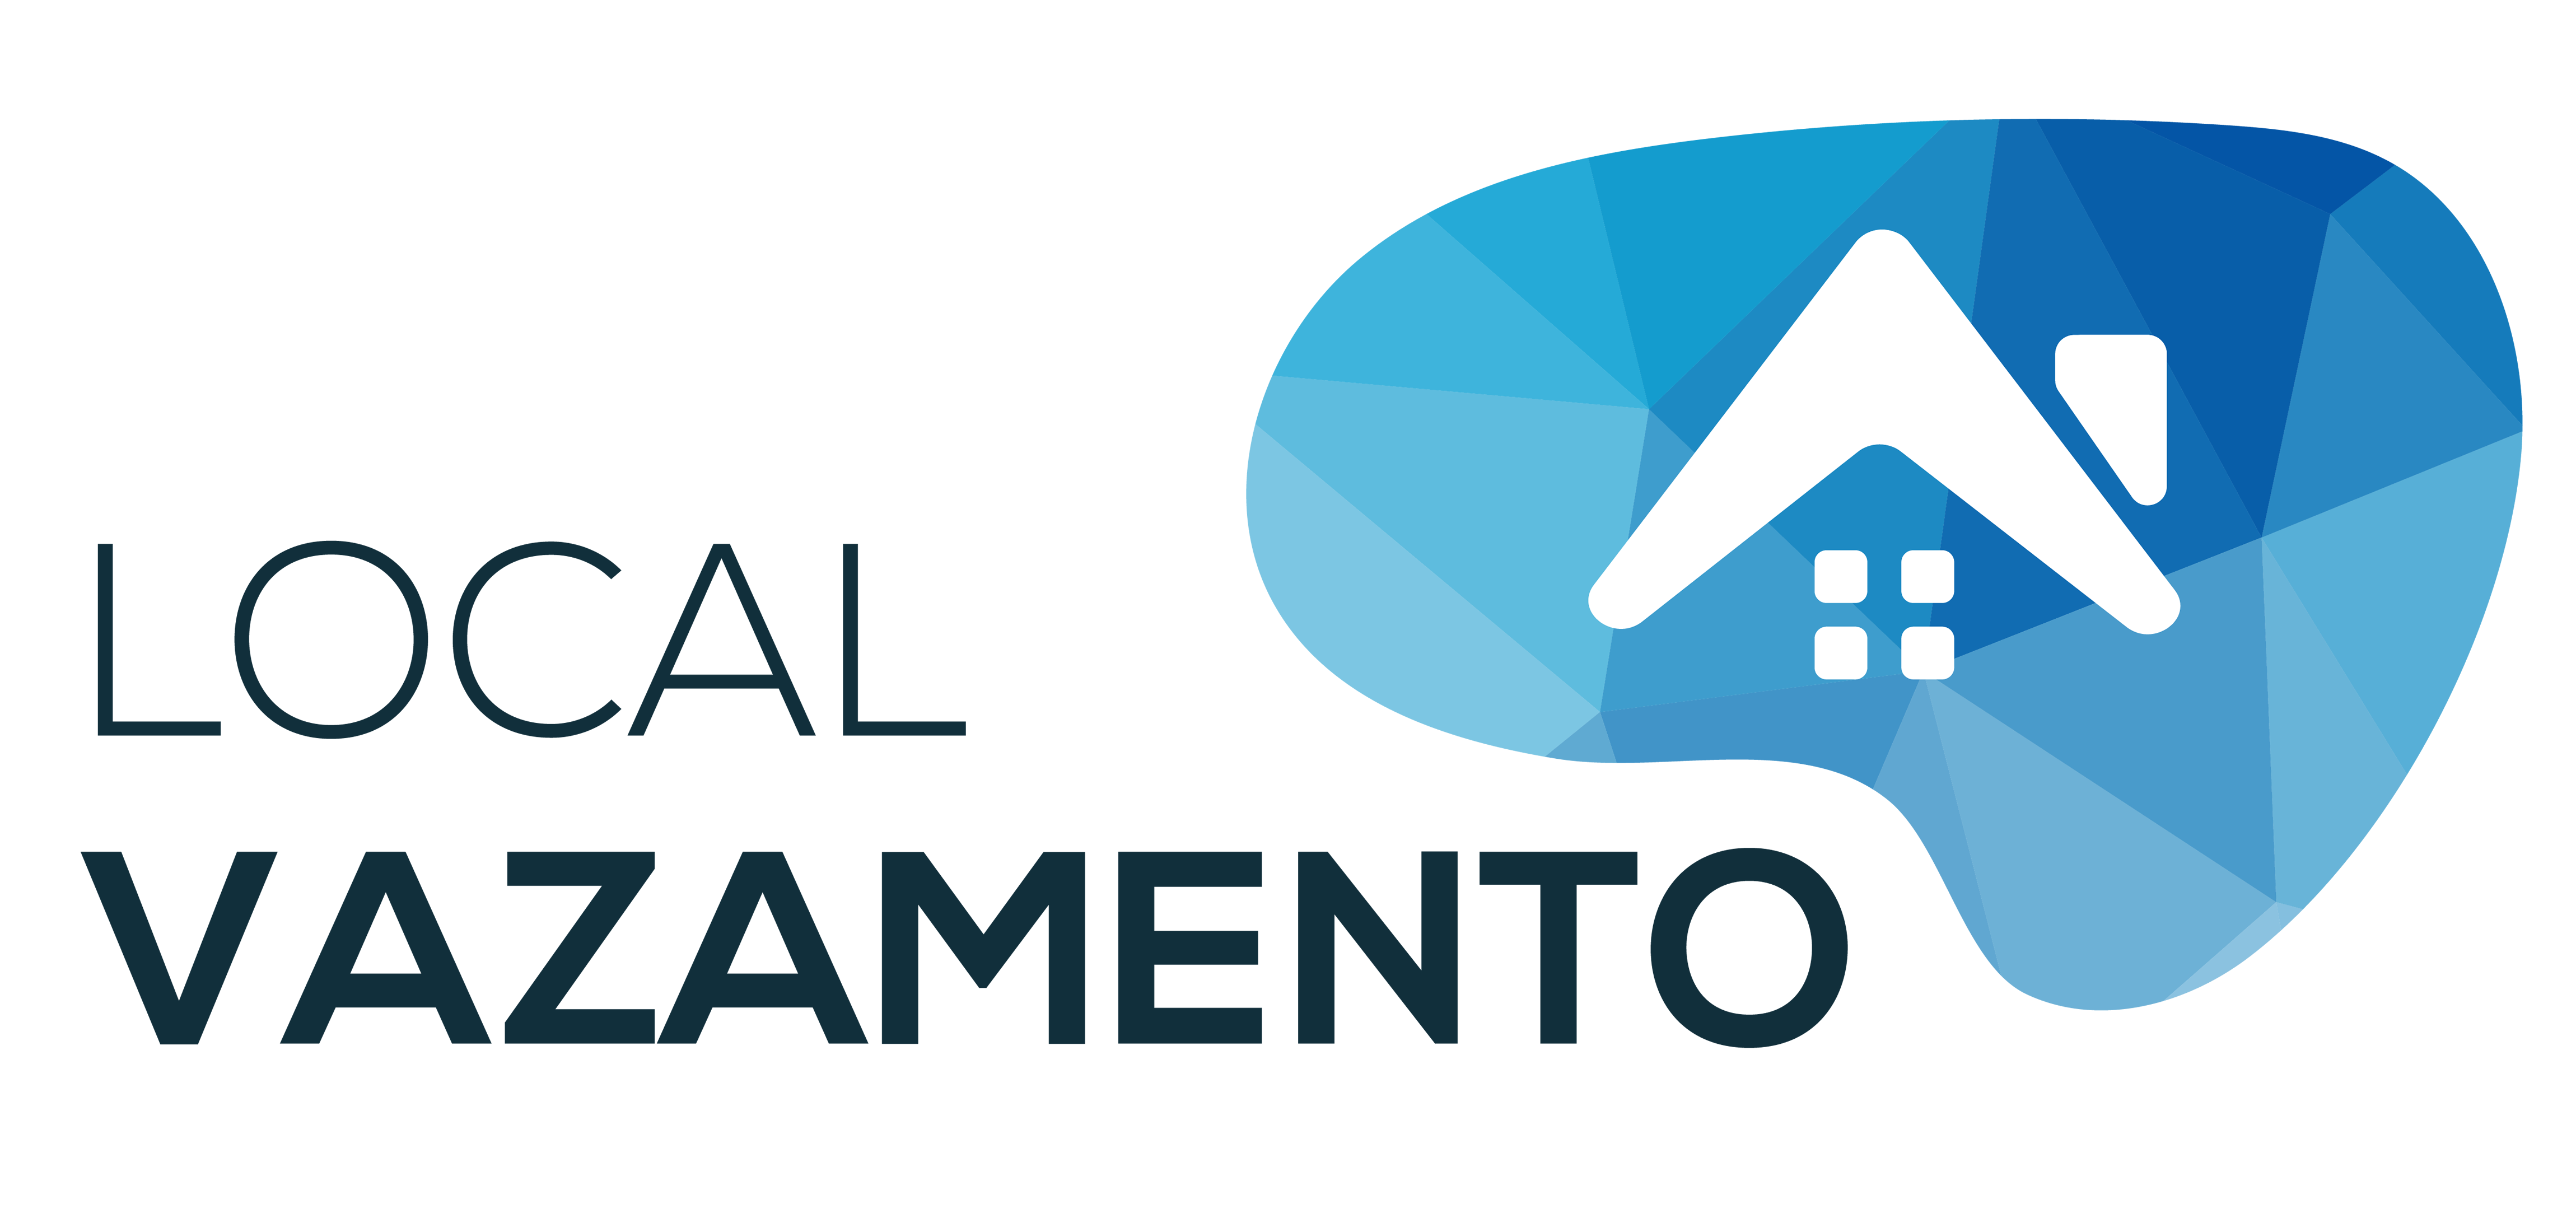 local-vazamento-logotipo-2019